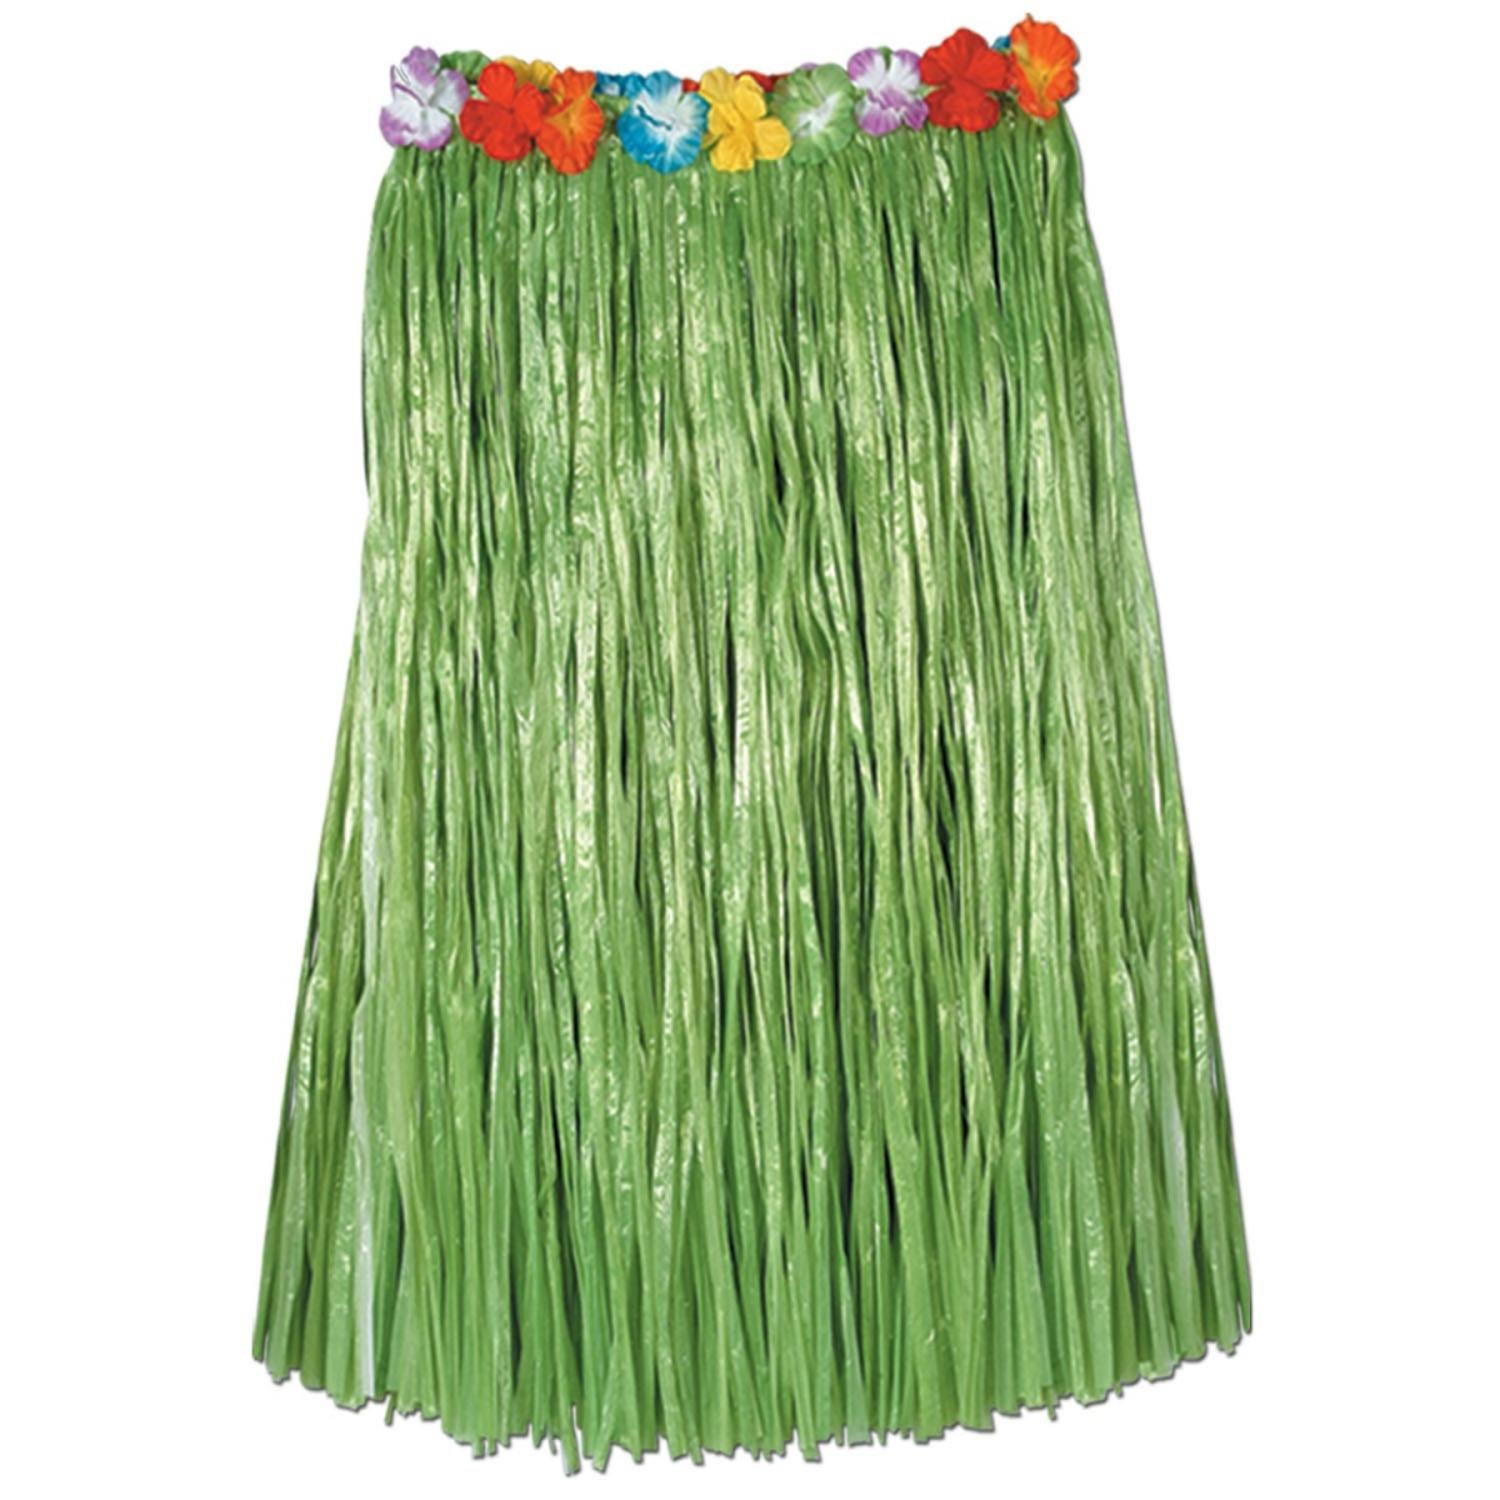 Club Pack of 12 Tropical Green Adult Sized Artificial Grass Hula Skirt 36'' by Party Central